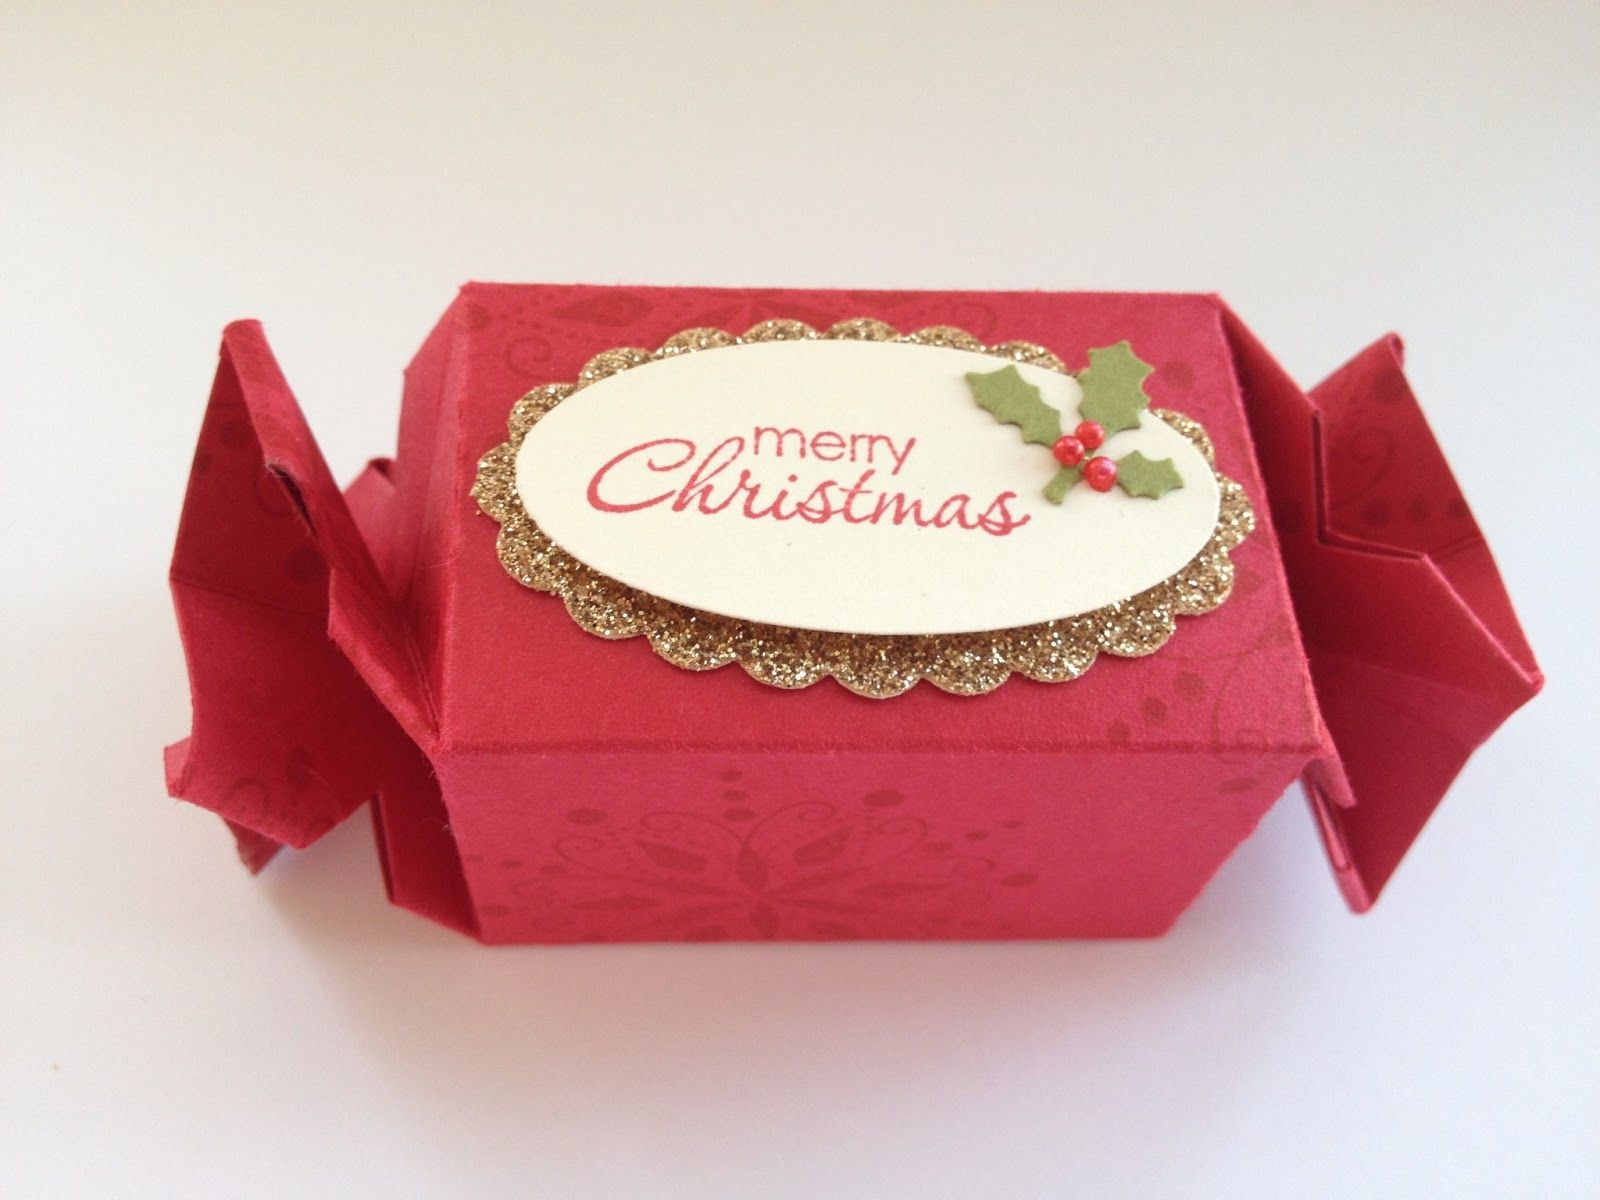 Christmas table favour using the Candy Wrapper die from Stampin' Up!